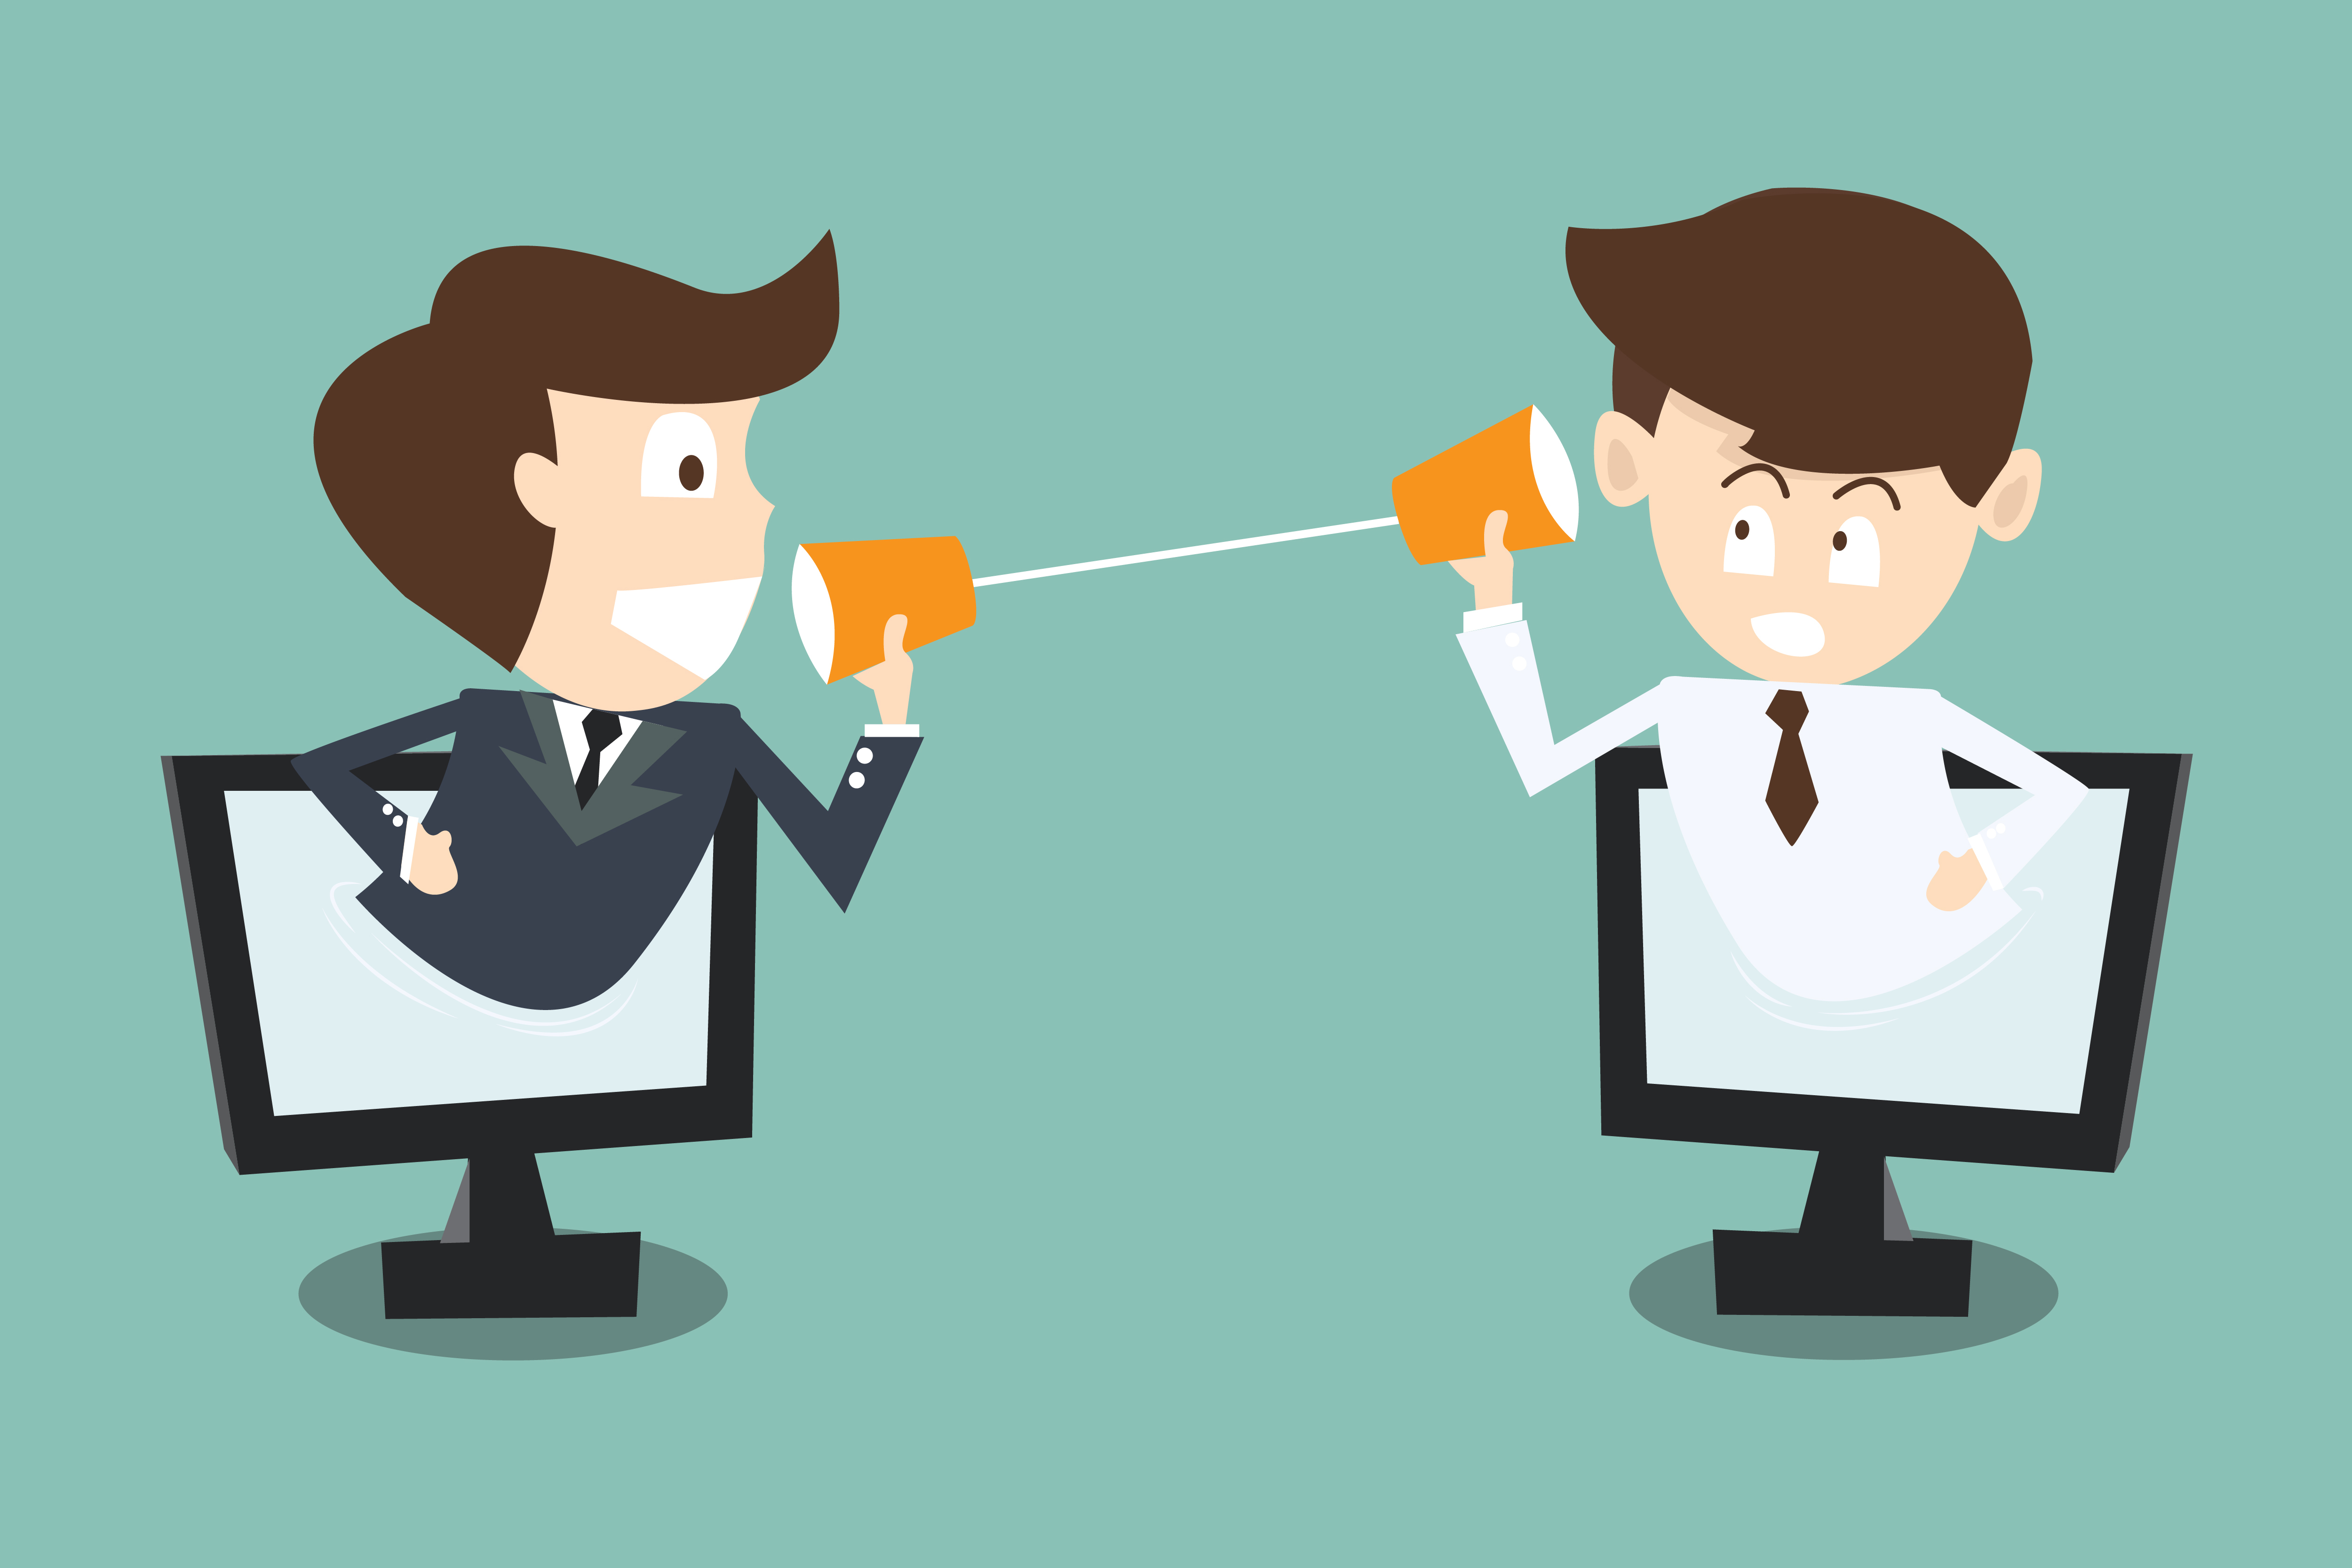 Communication clipart professional communication. Strategies tips to sharpen